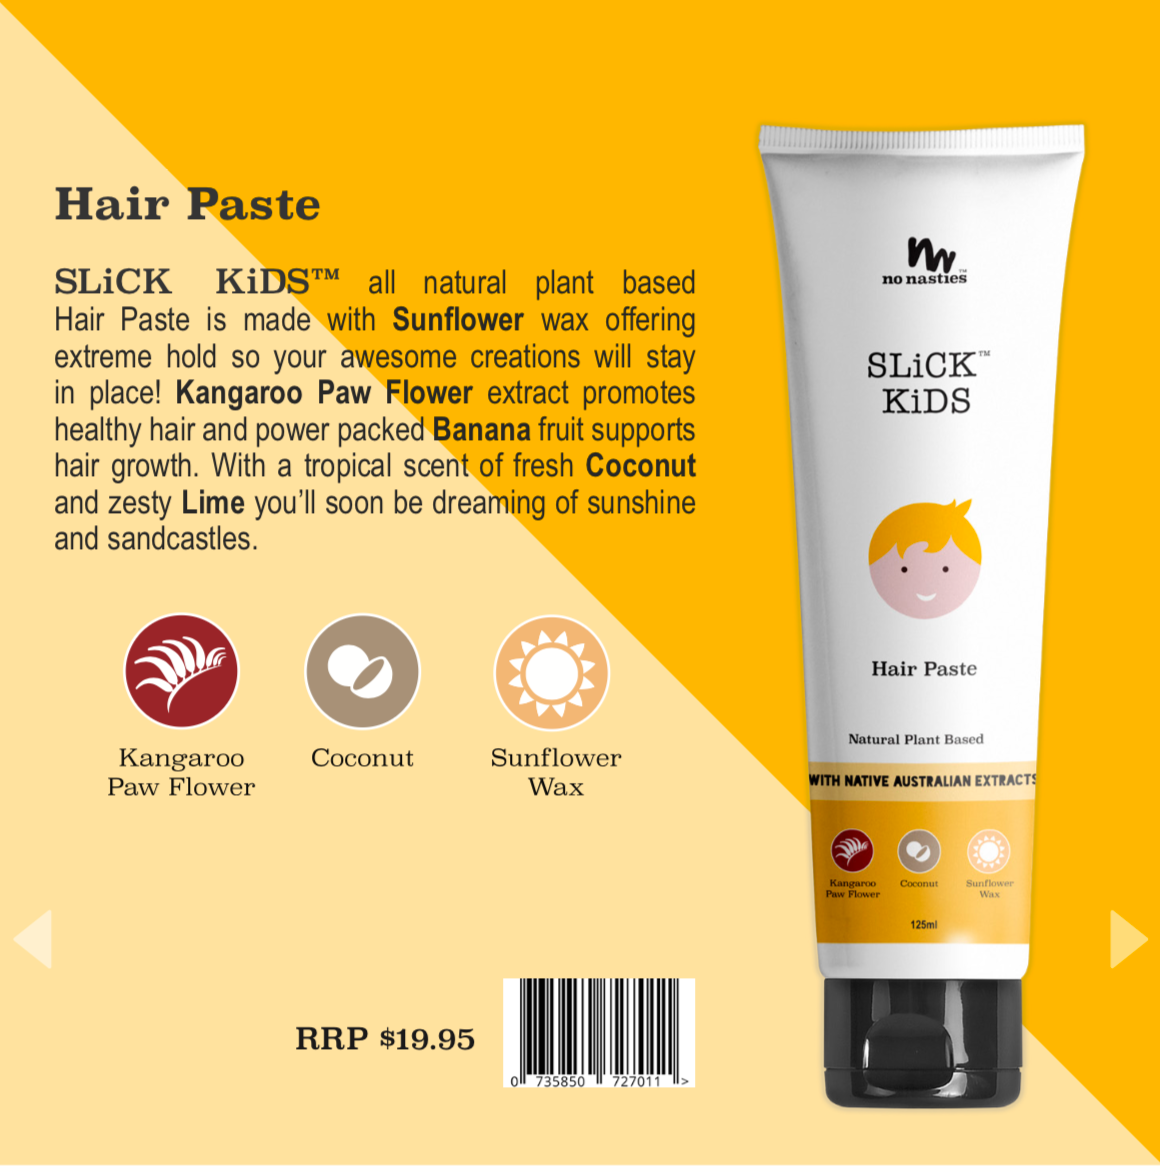 Natural Plant Based Hair Paste